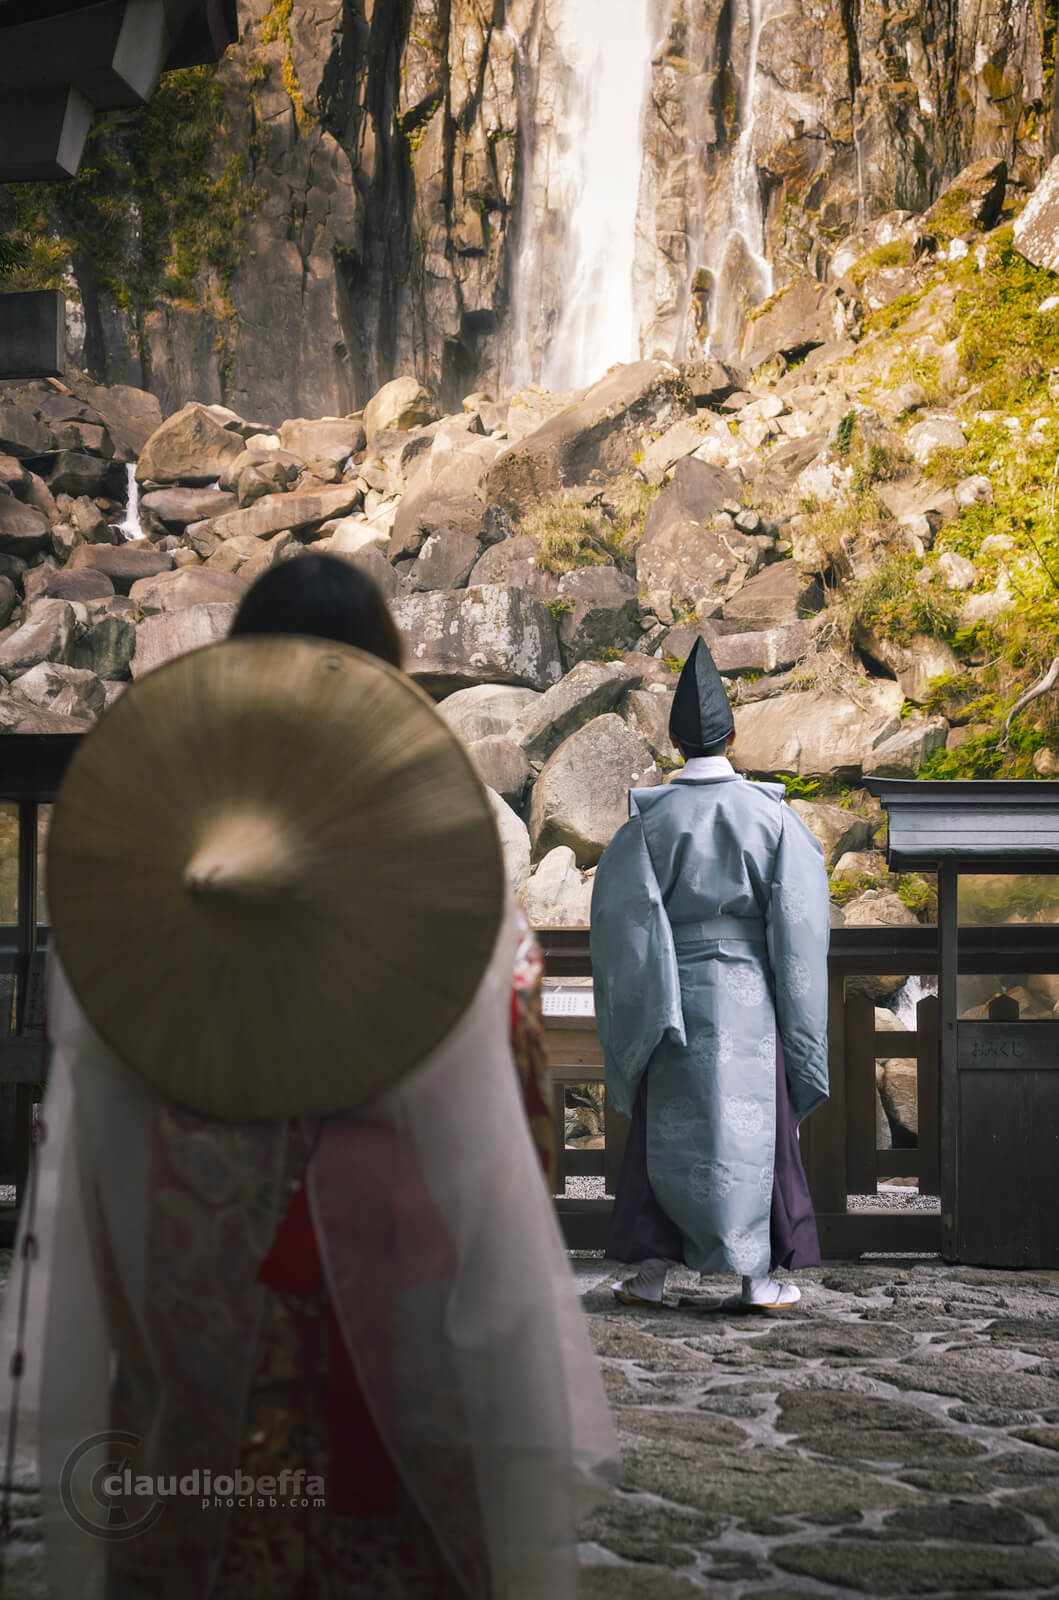 Tourists, Pilgrims, Kimono, Heian, Nachi no Taki, Waterfall, Hirou Shrine, Hiryu Gongen, Nature, Culture, Kii peninsula, Kumano, Japan